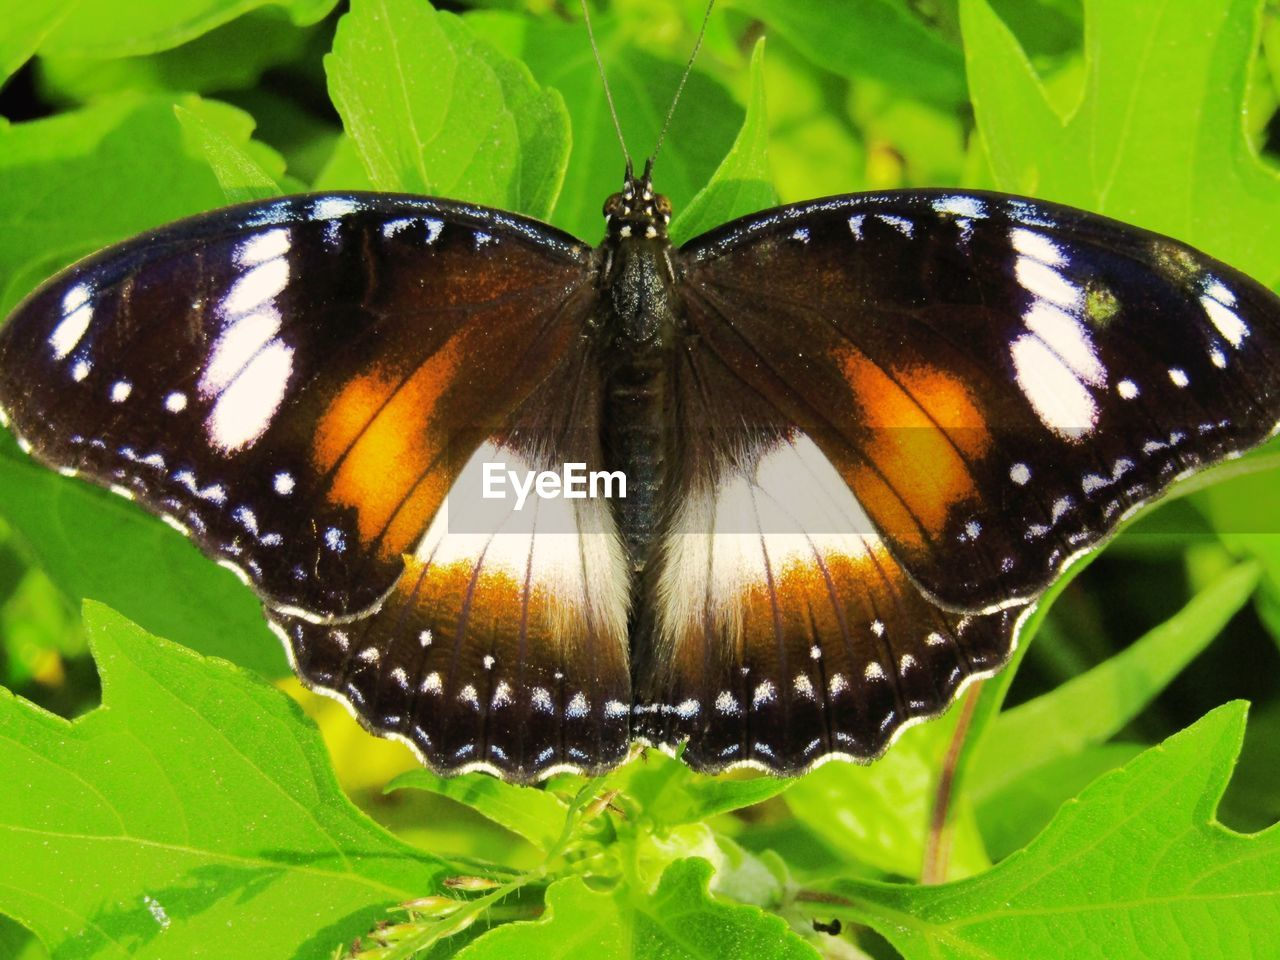 animal themes, insect, animal wildlife, one animal, invertebrate, animal, animals in the wild, leaf, butterfly - insect, animal wing, plant part, close-up, beauty in nature, green color, nature, plant, no people, animal markings, day, animal body part, butterfly, outdoors